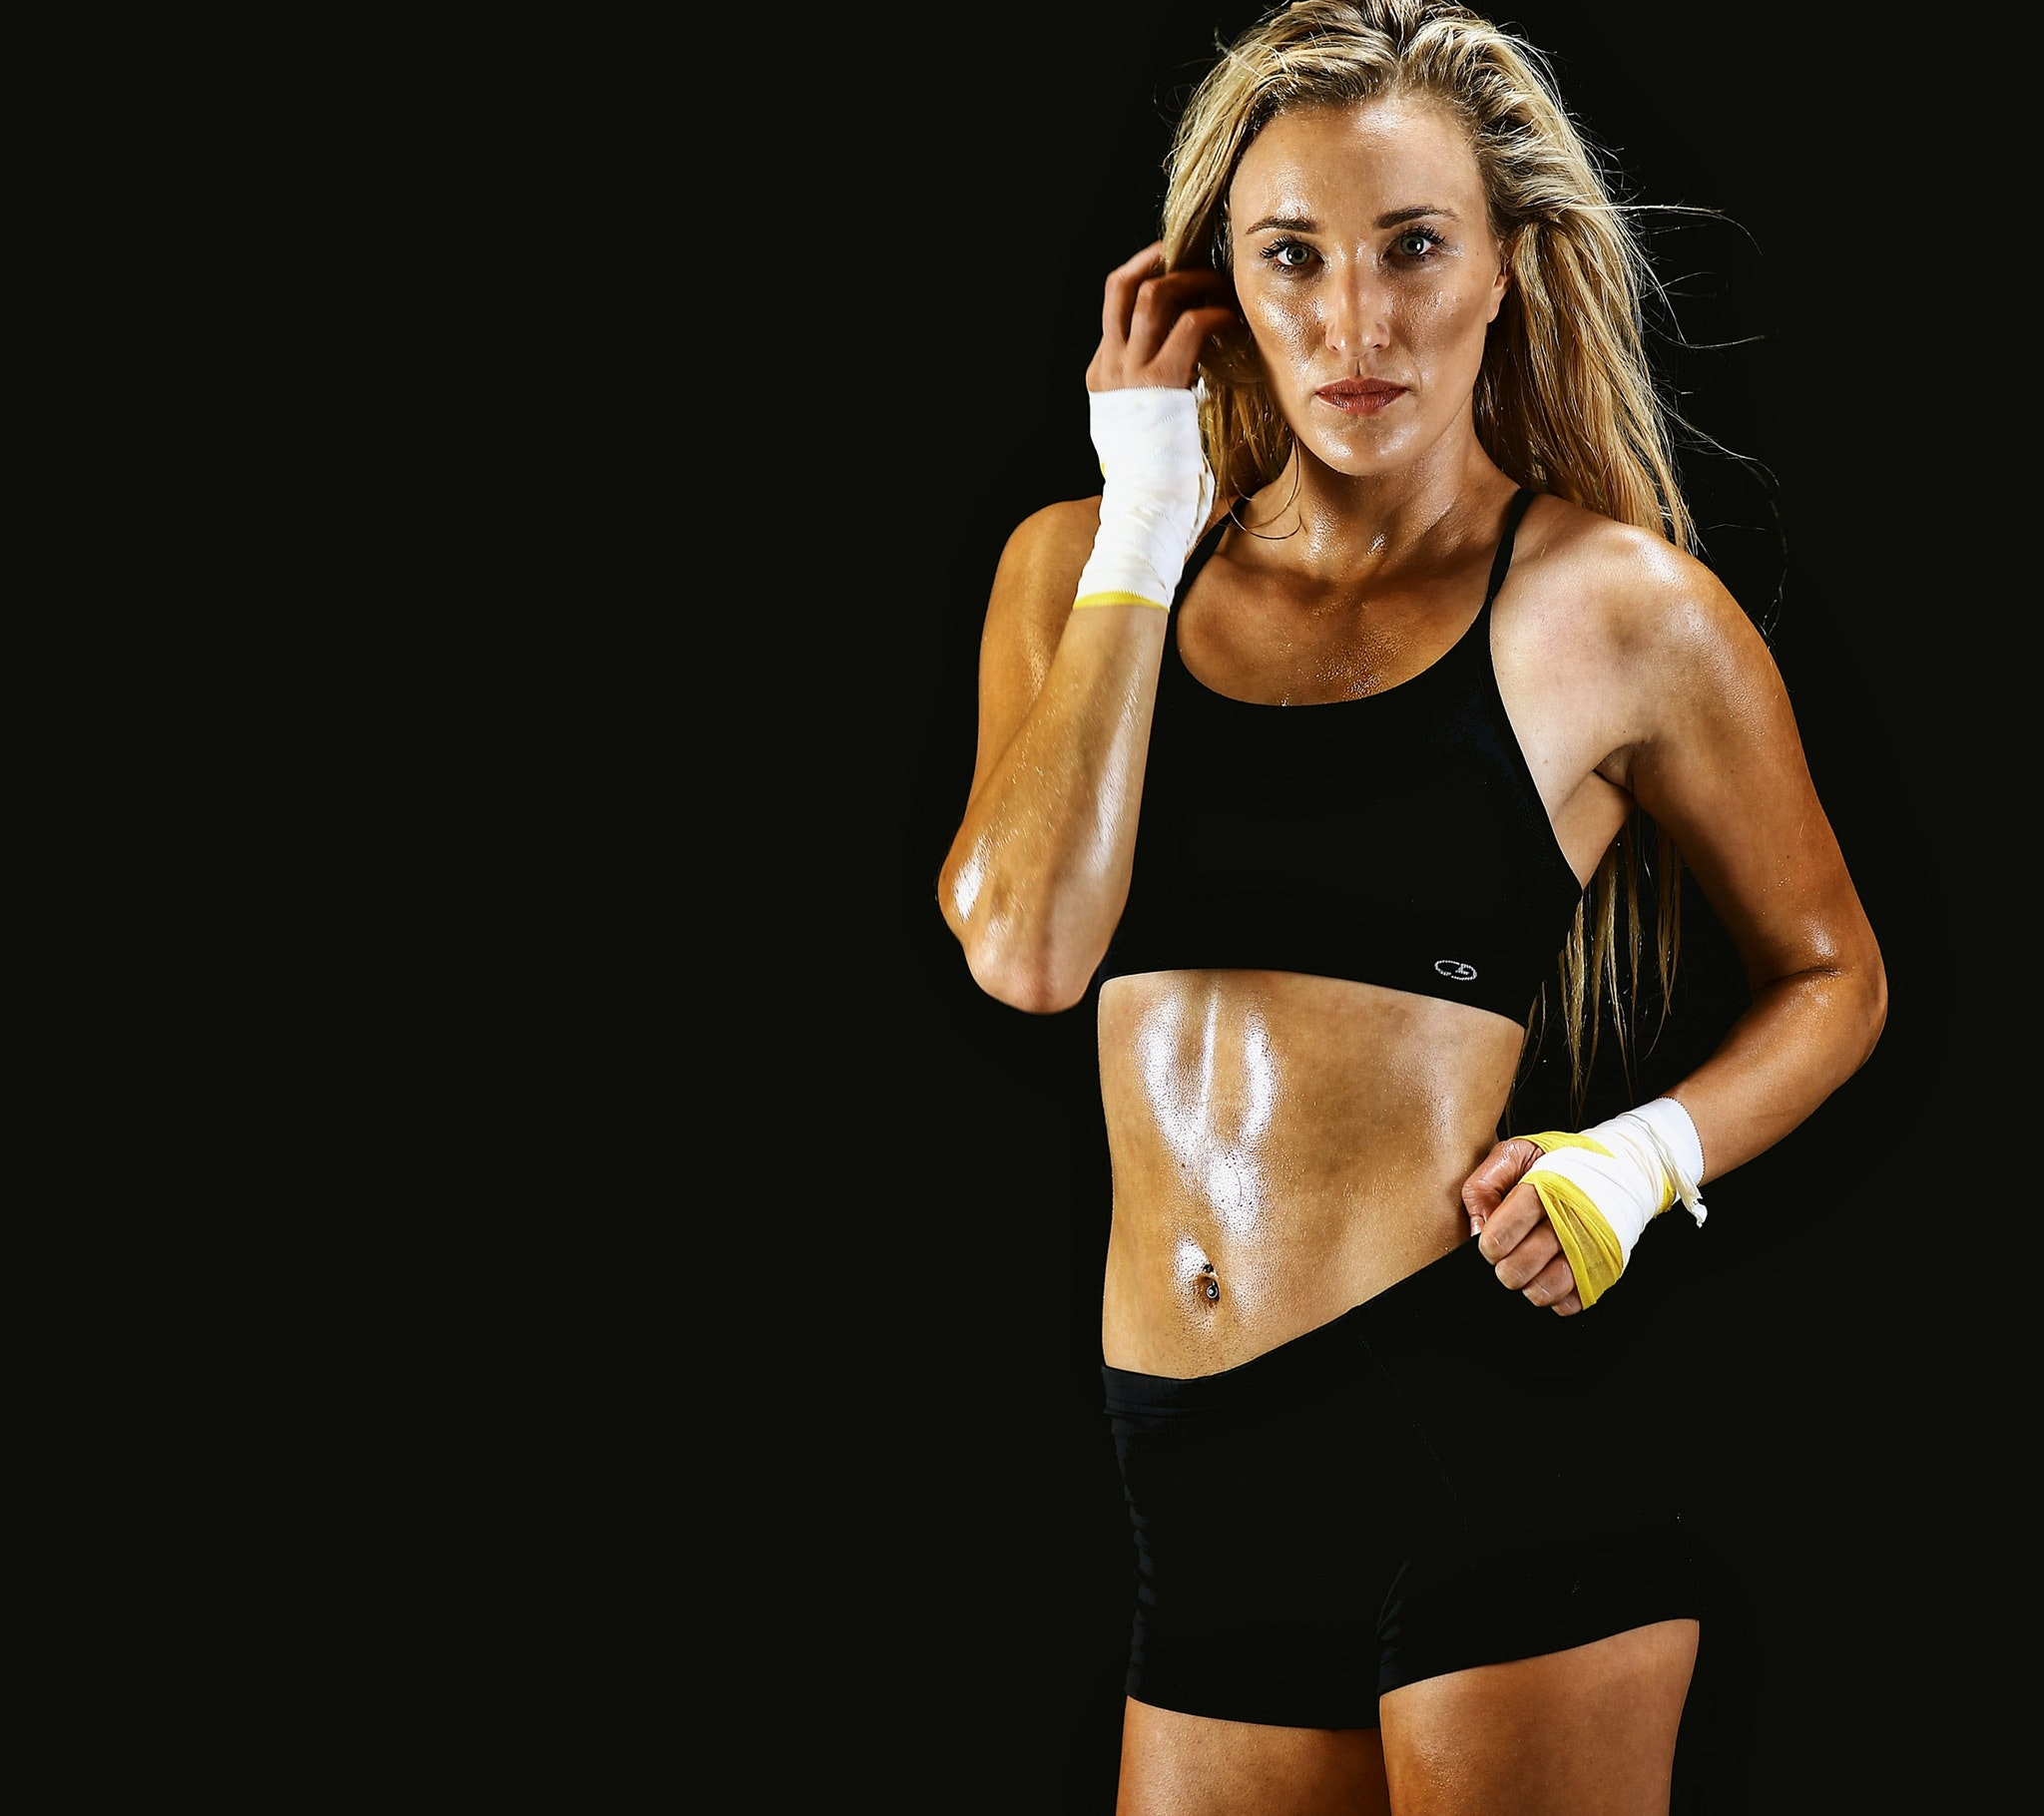 Woman wearing black sports bra and shorts with black background photo